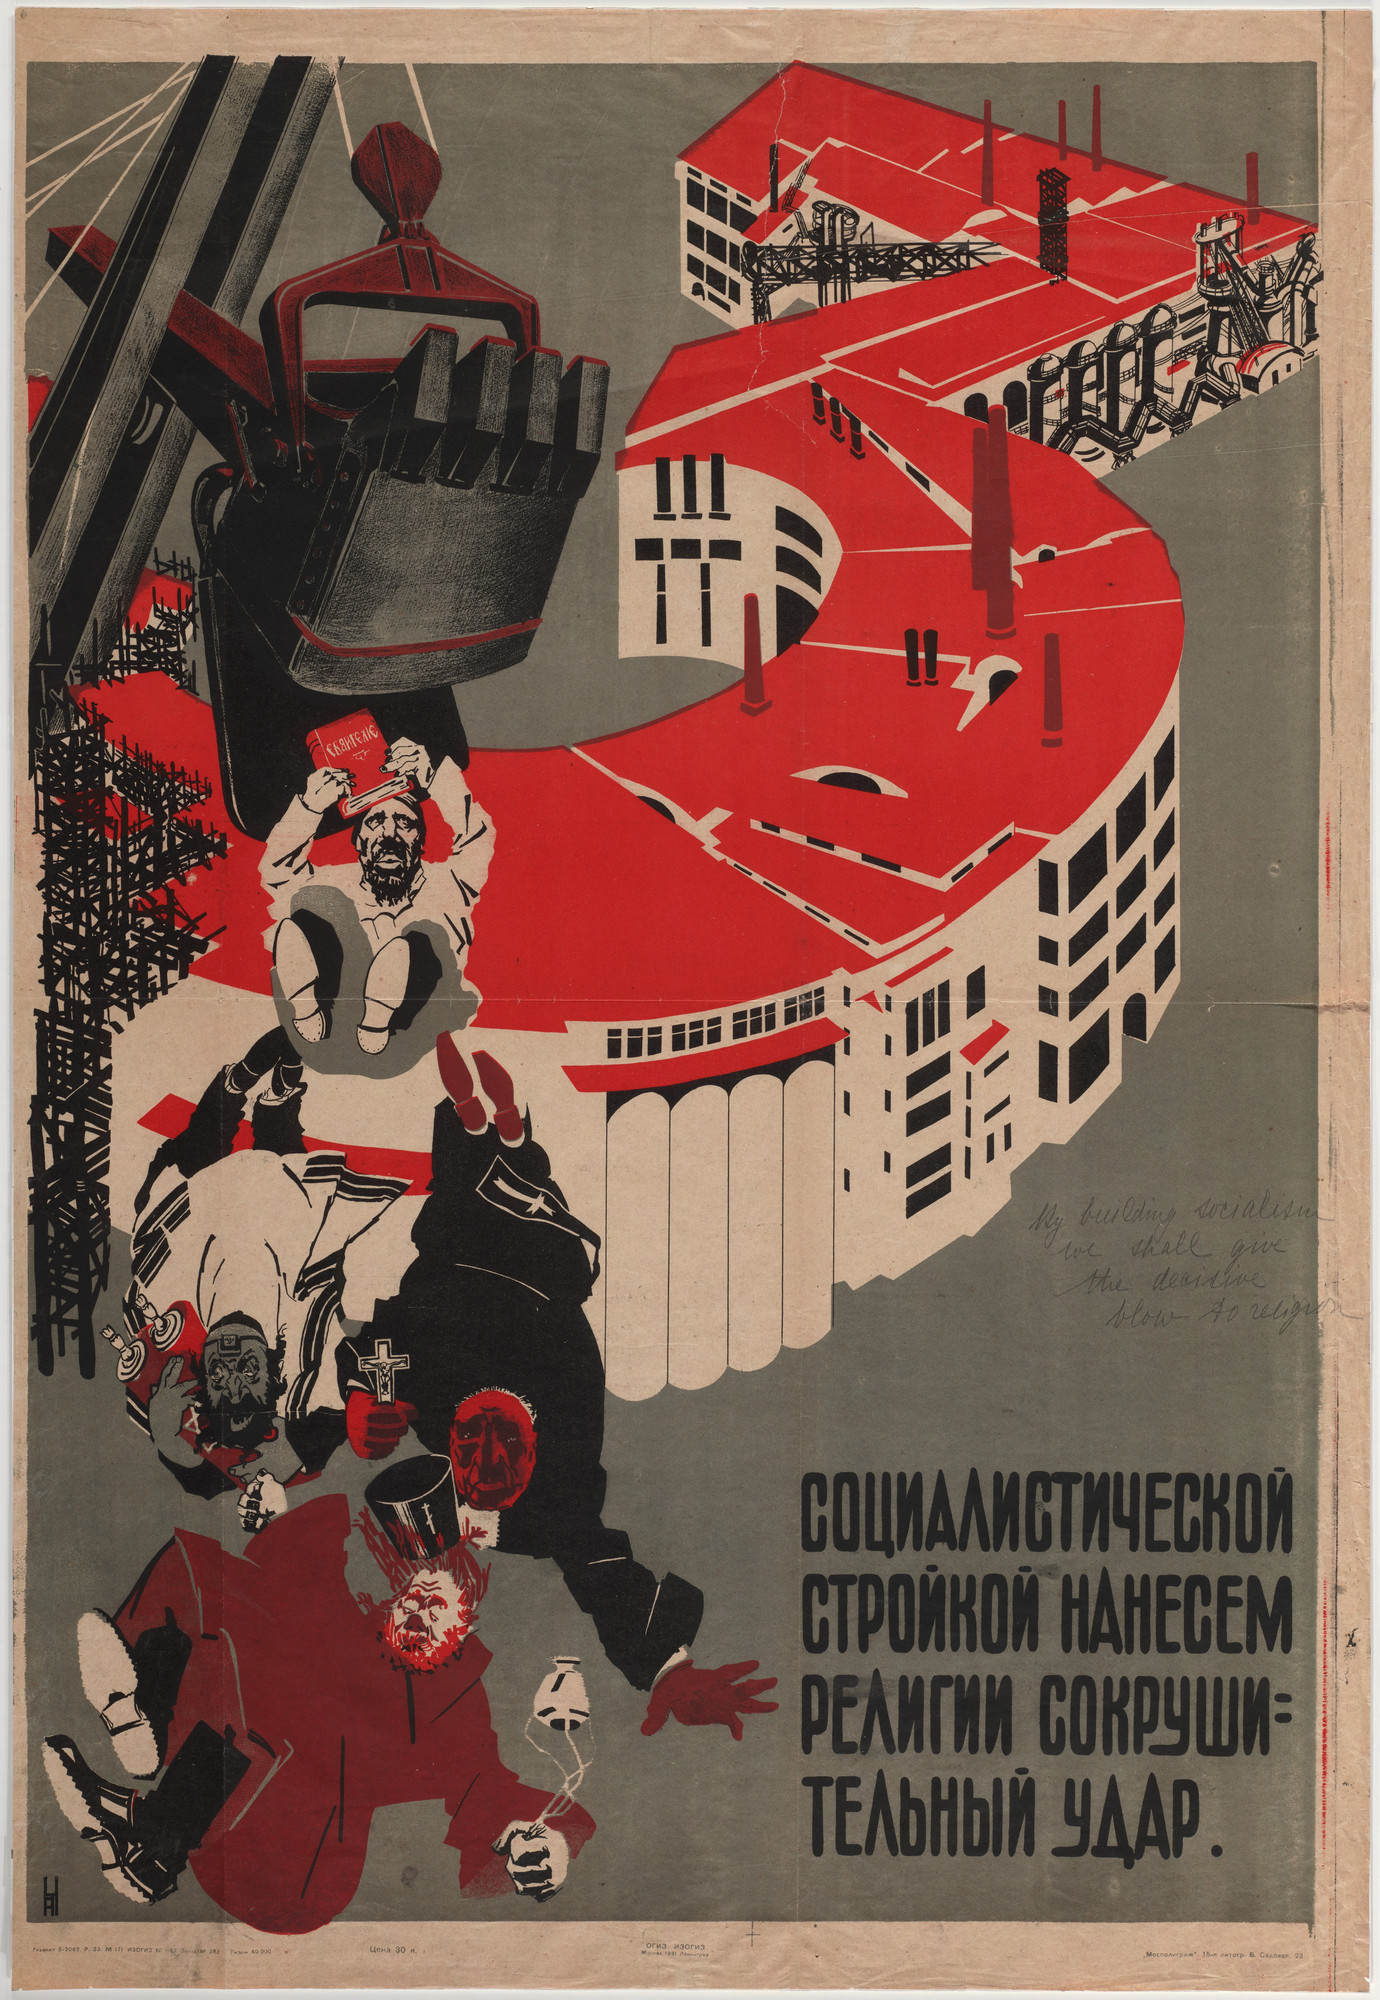 Unknown Artist. By Building Socialism We Shall Give the Decisive Blow to Religion. 1931